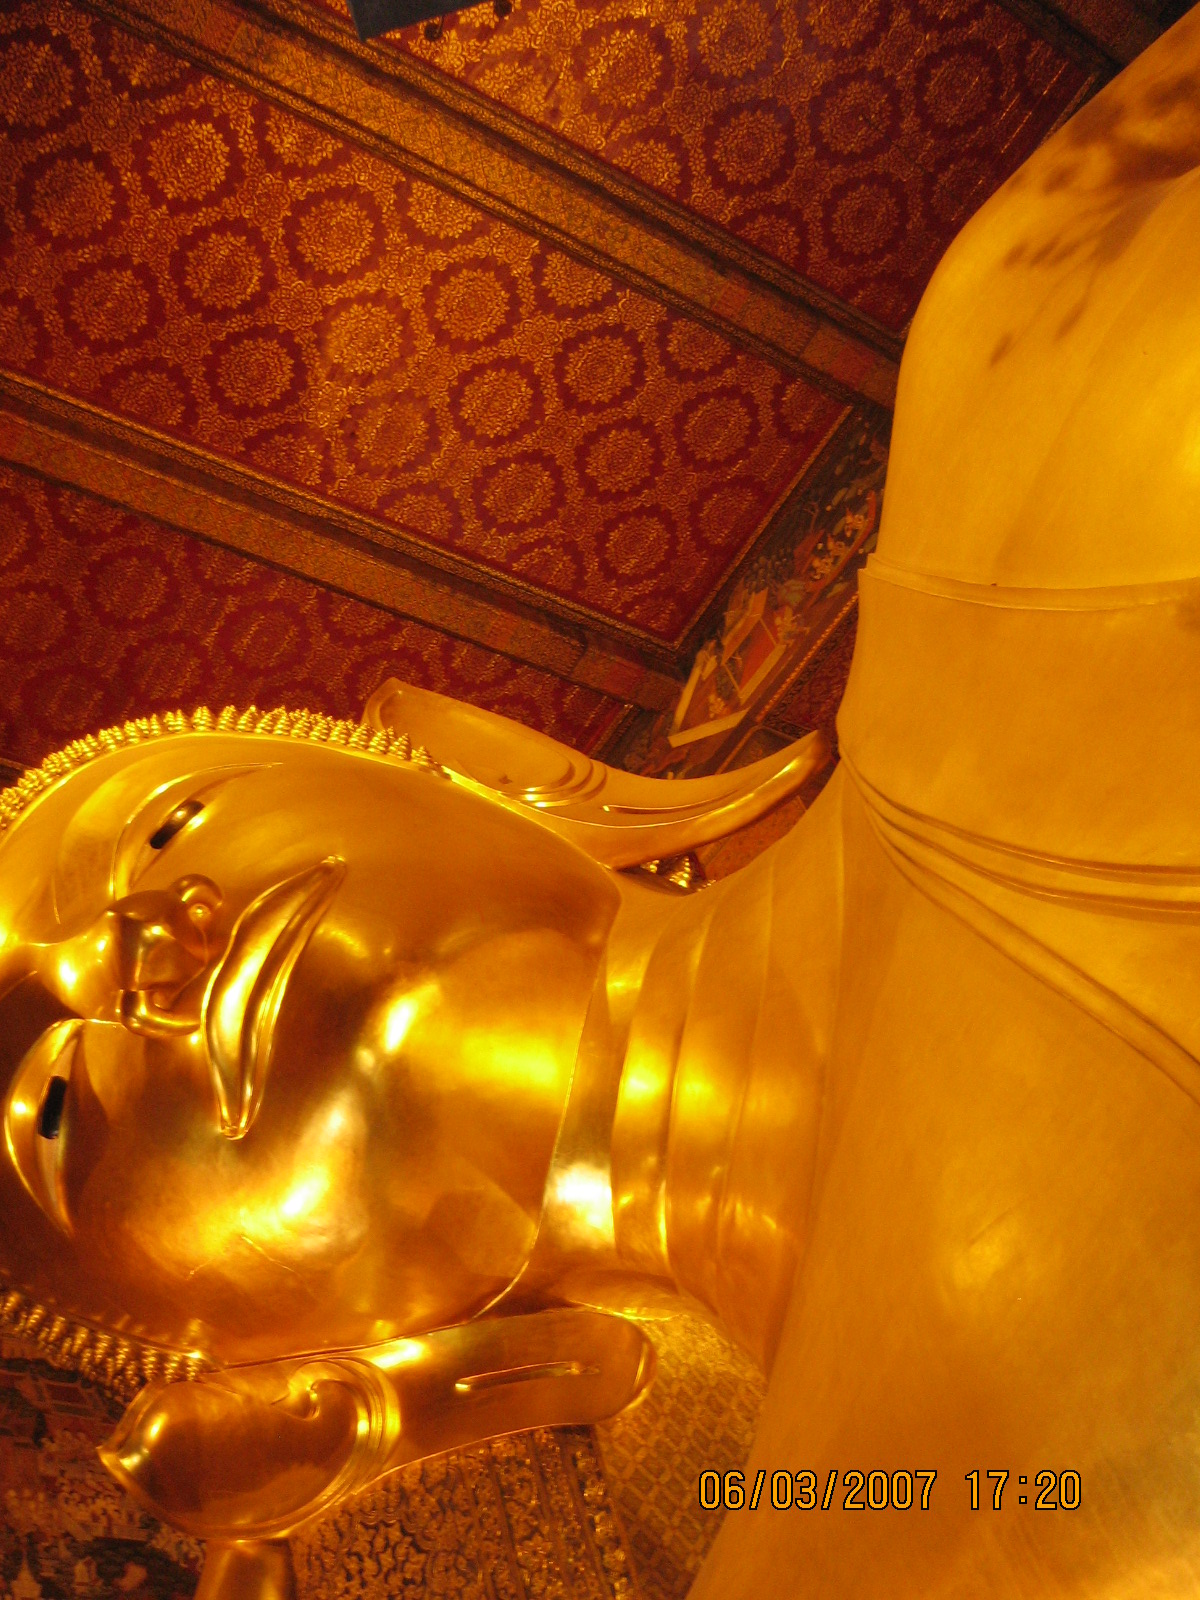 Wat Pho  วัดโพธิ์ in Bangkok- longest reclining Buddha